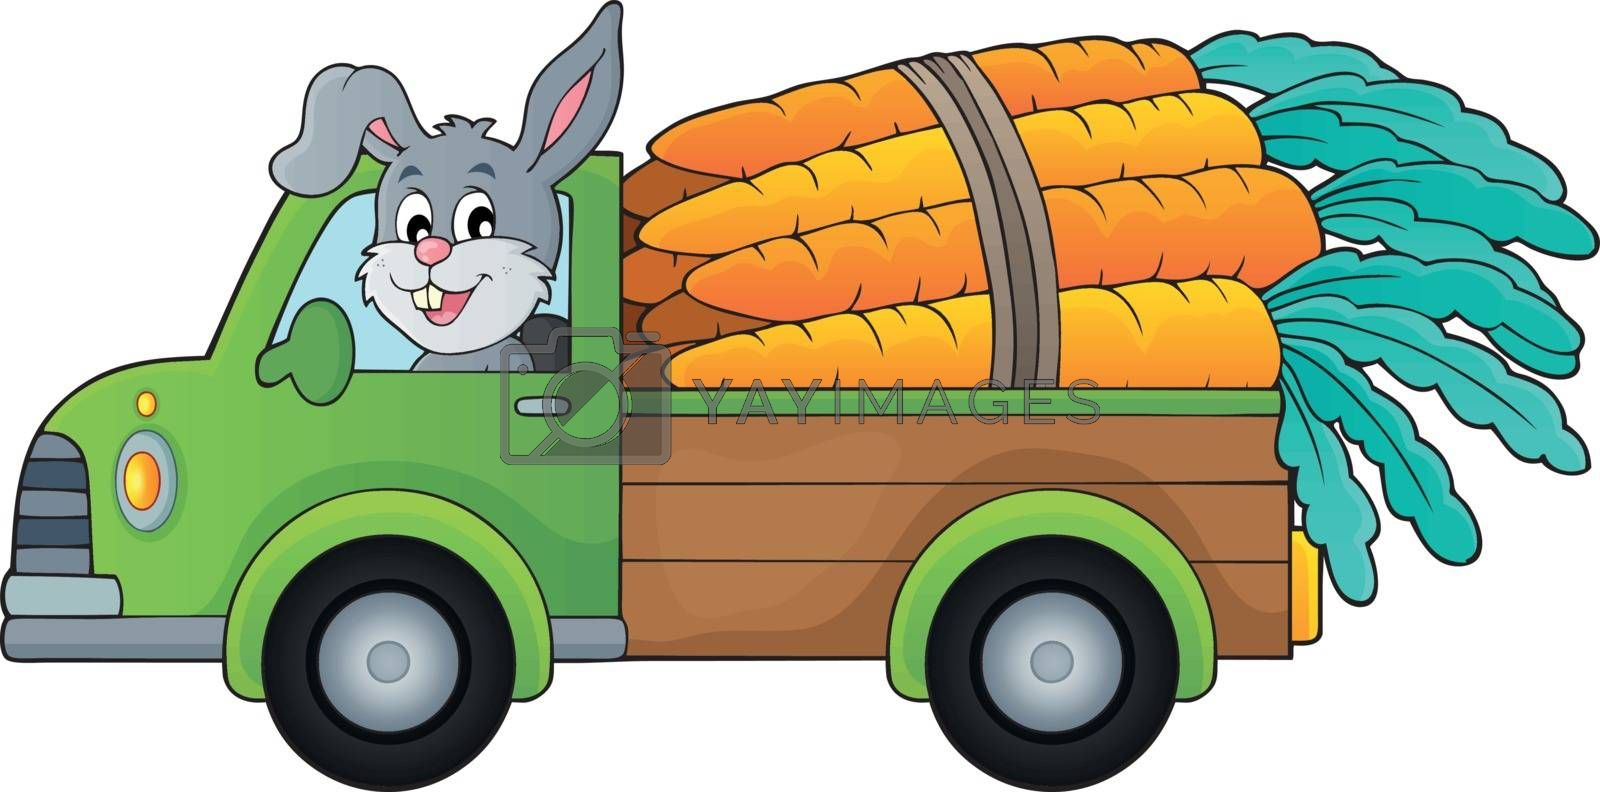 Truck with carrots theme image 1 - eps10 vector illustration.